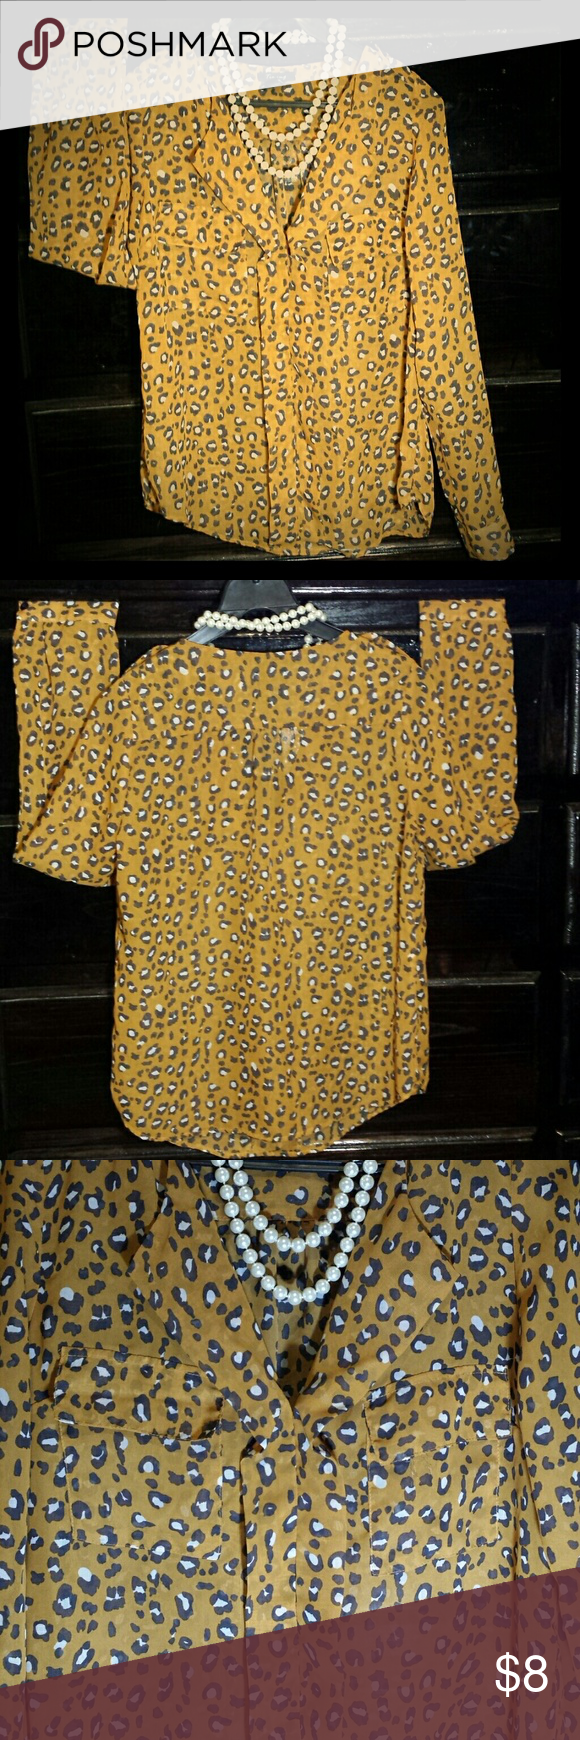 Cheetah print blouse Burnt yellow/gold cheetah print blouse (necklace not included) Tops Blouses